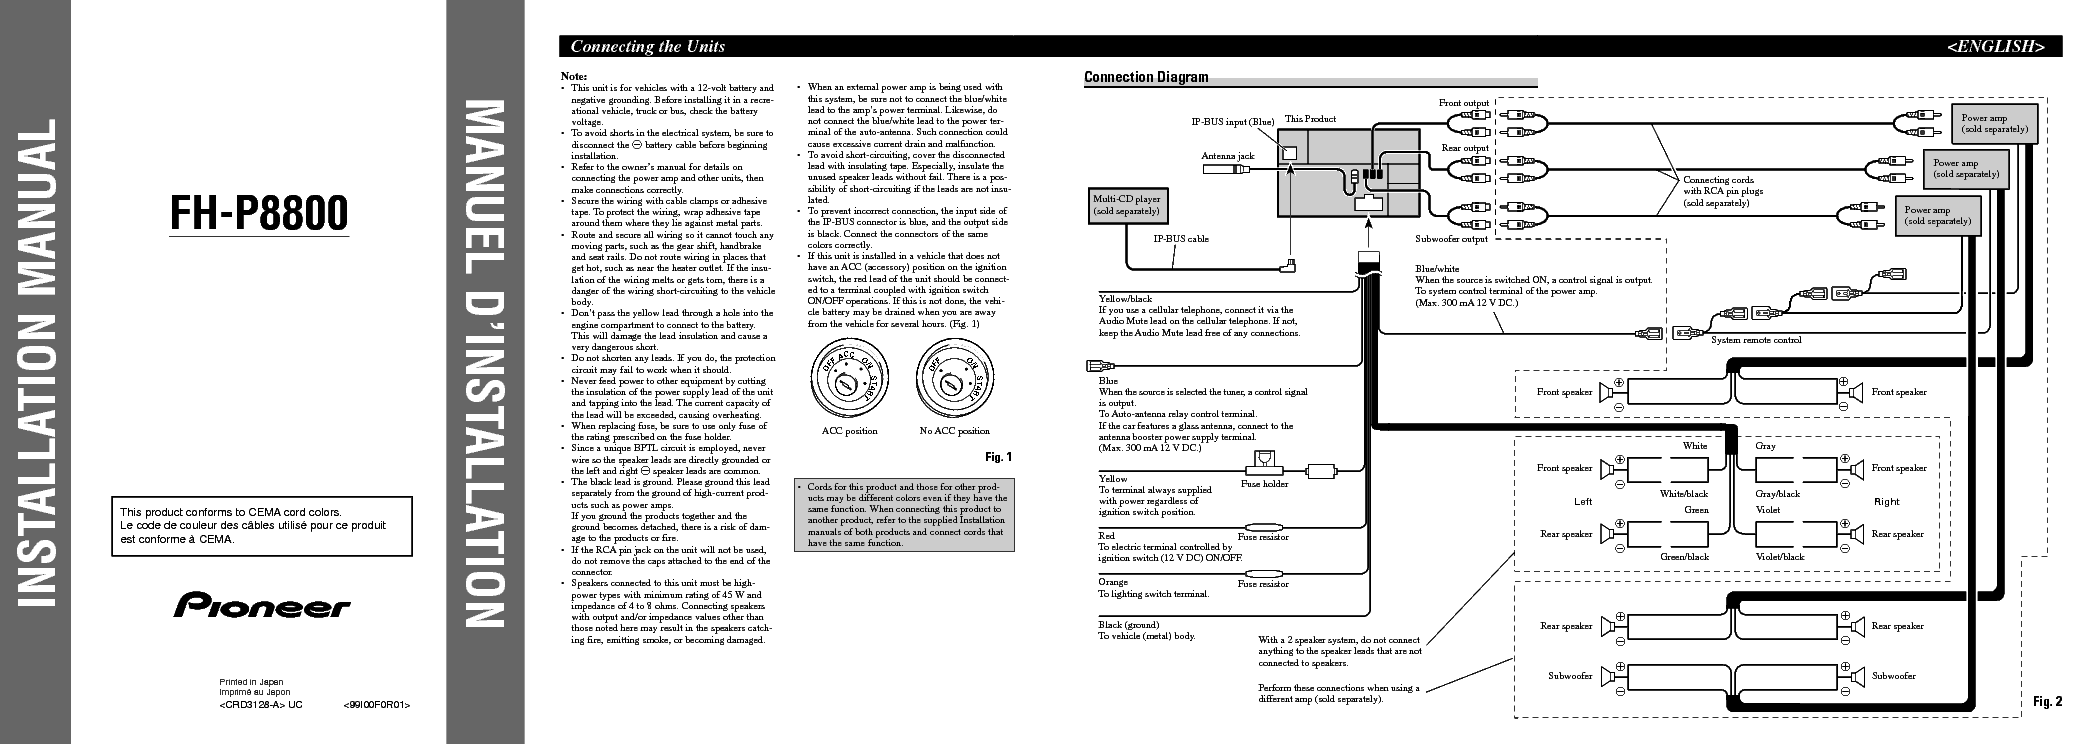 Pioneer P800bt Wiring Diagram